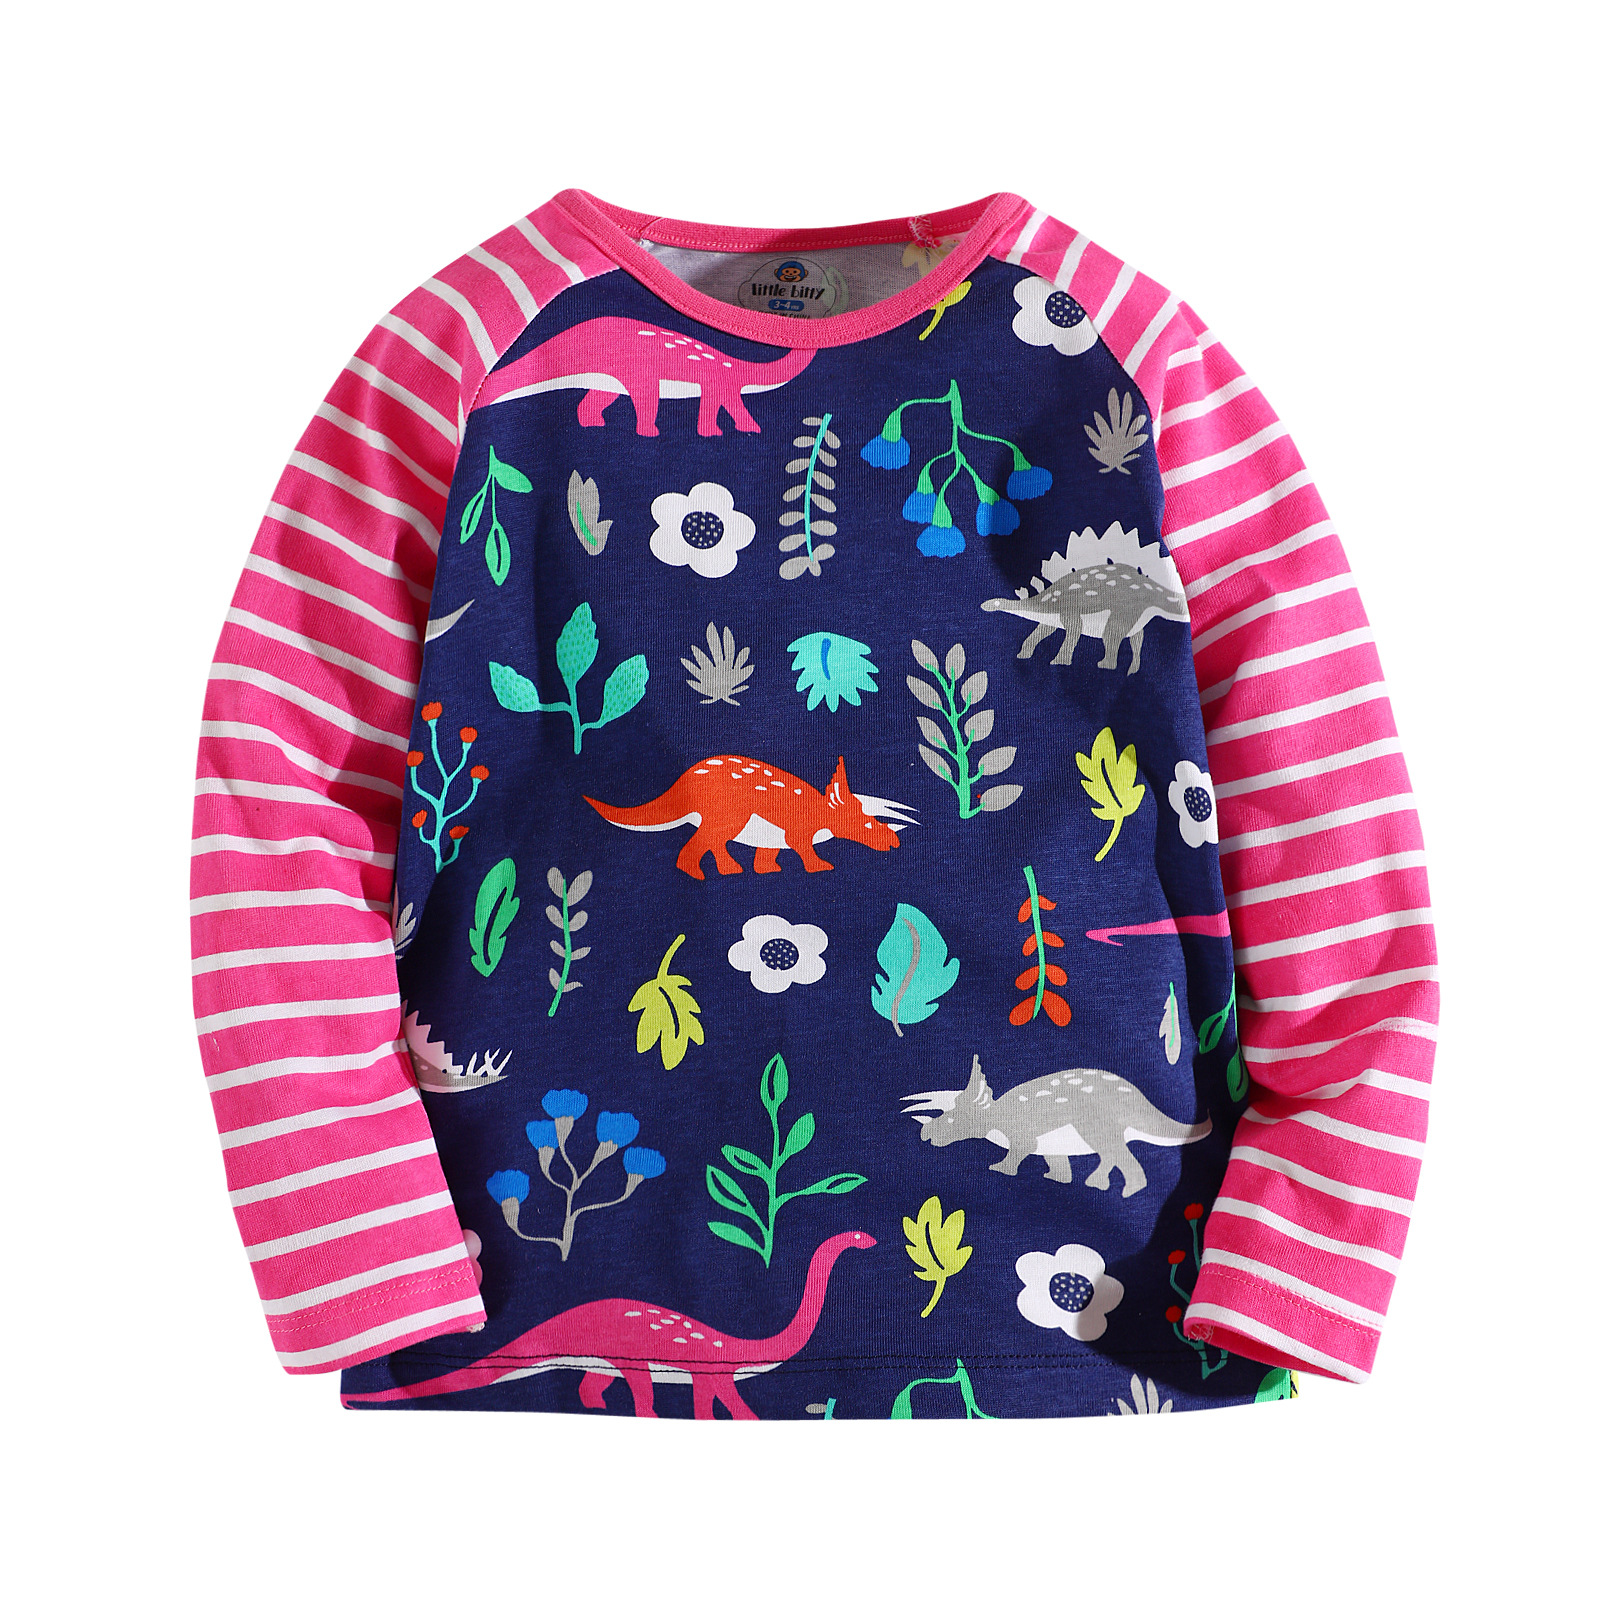 kids girl Tshirts long sleeve printing floral cotton children girl causal tops weekend comfortable T shirts 2-12yrs